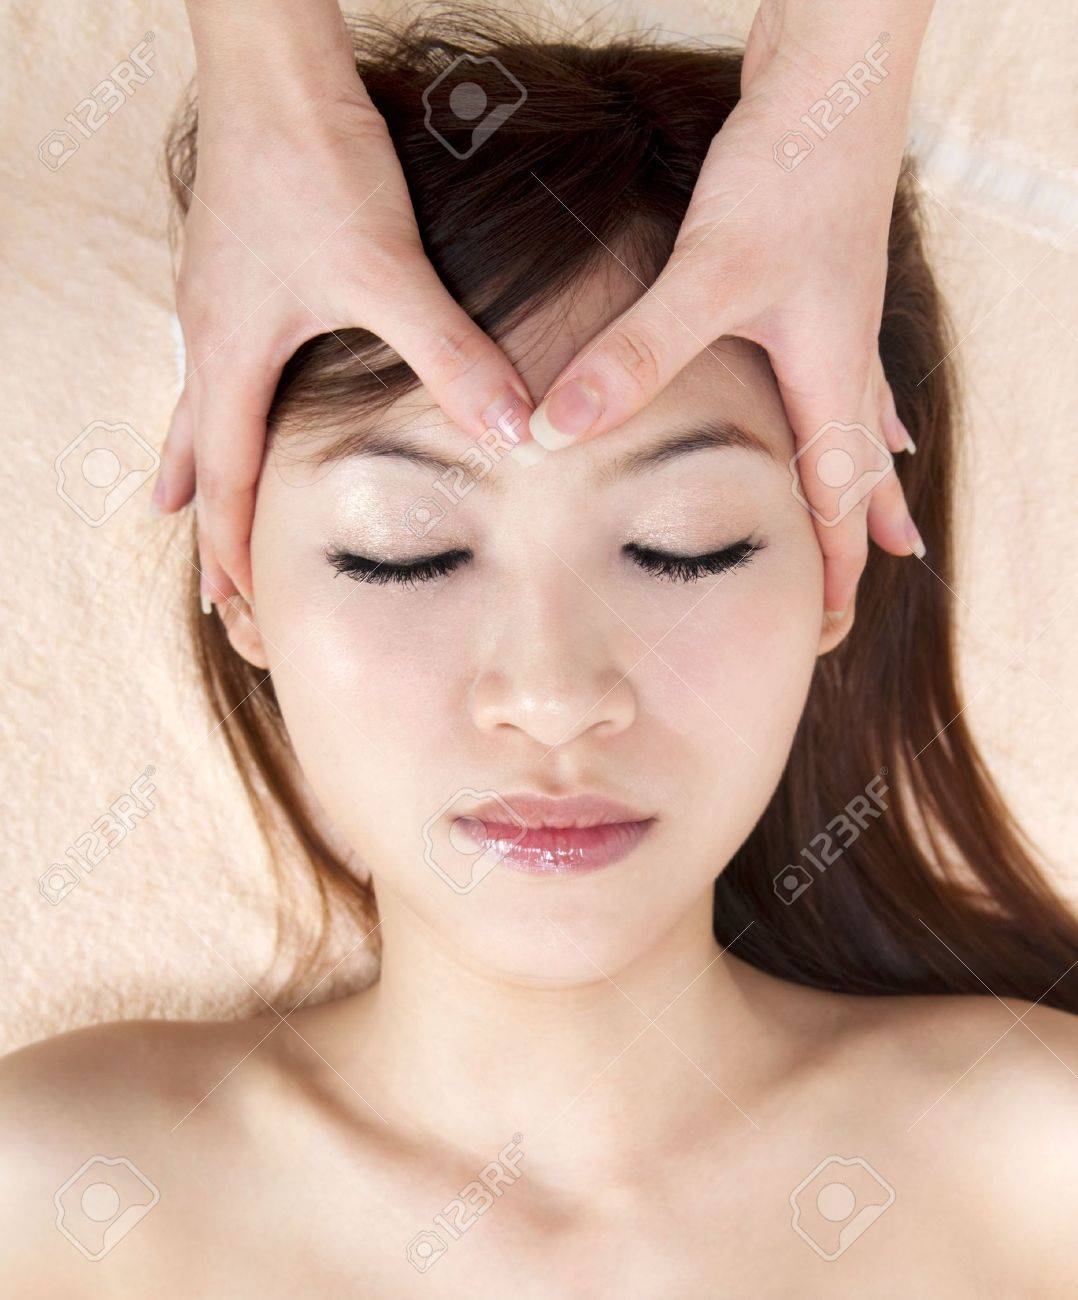 Beauty and Spa - Asian Girl having a massage on her head Stock Photo - 7863470